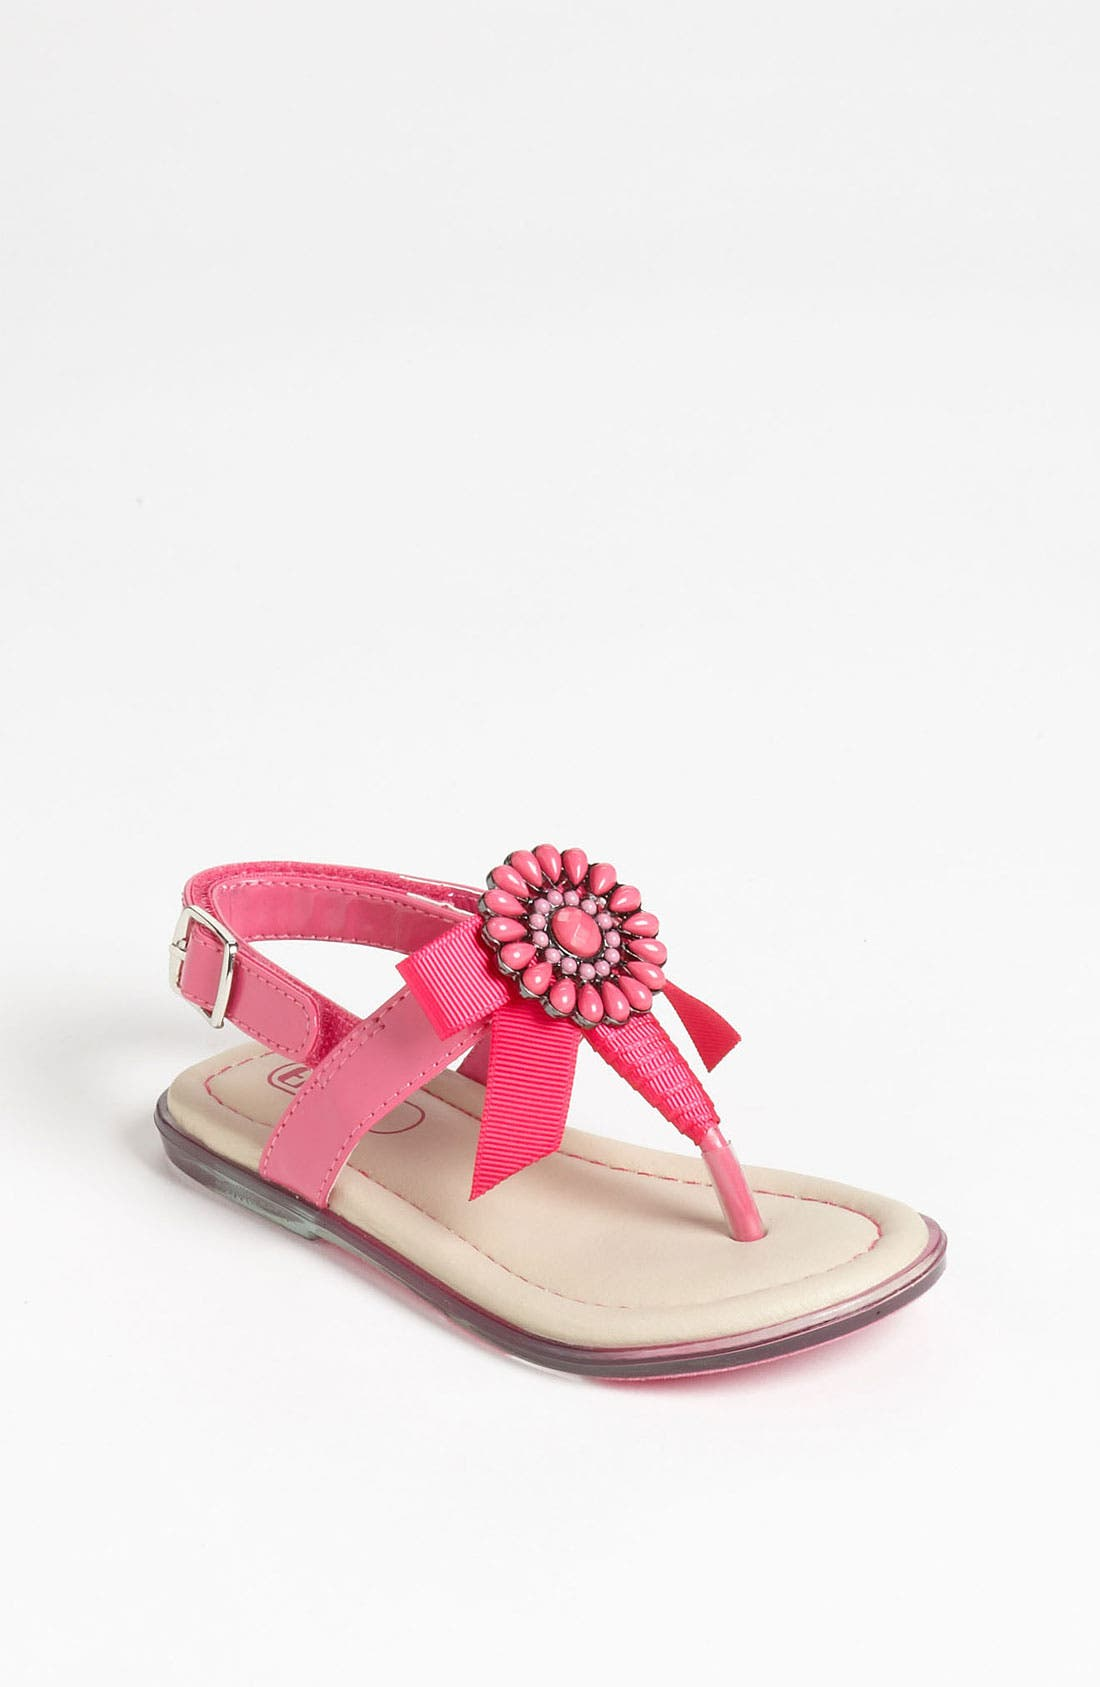 Alternate Image 1 Selected - Enzo 'Kristina' Bow Sandal (Toddler)